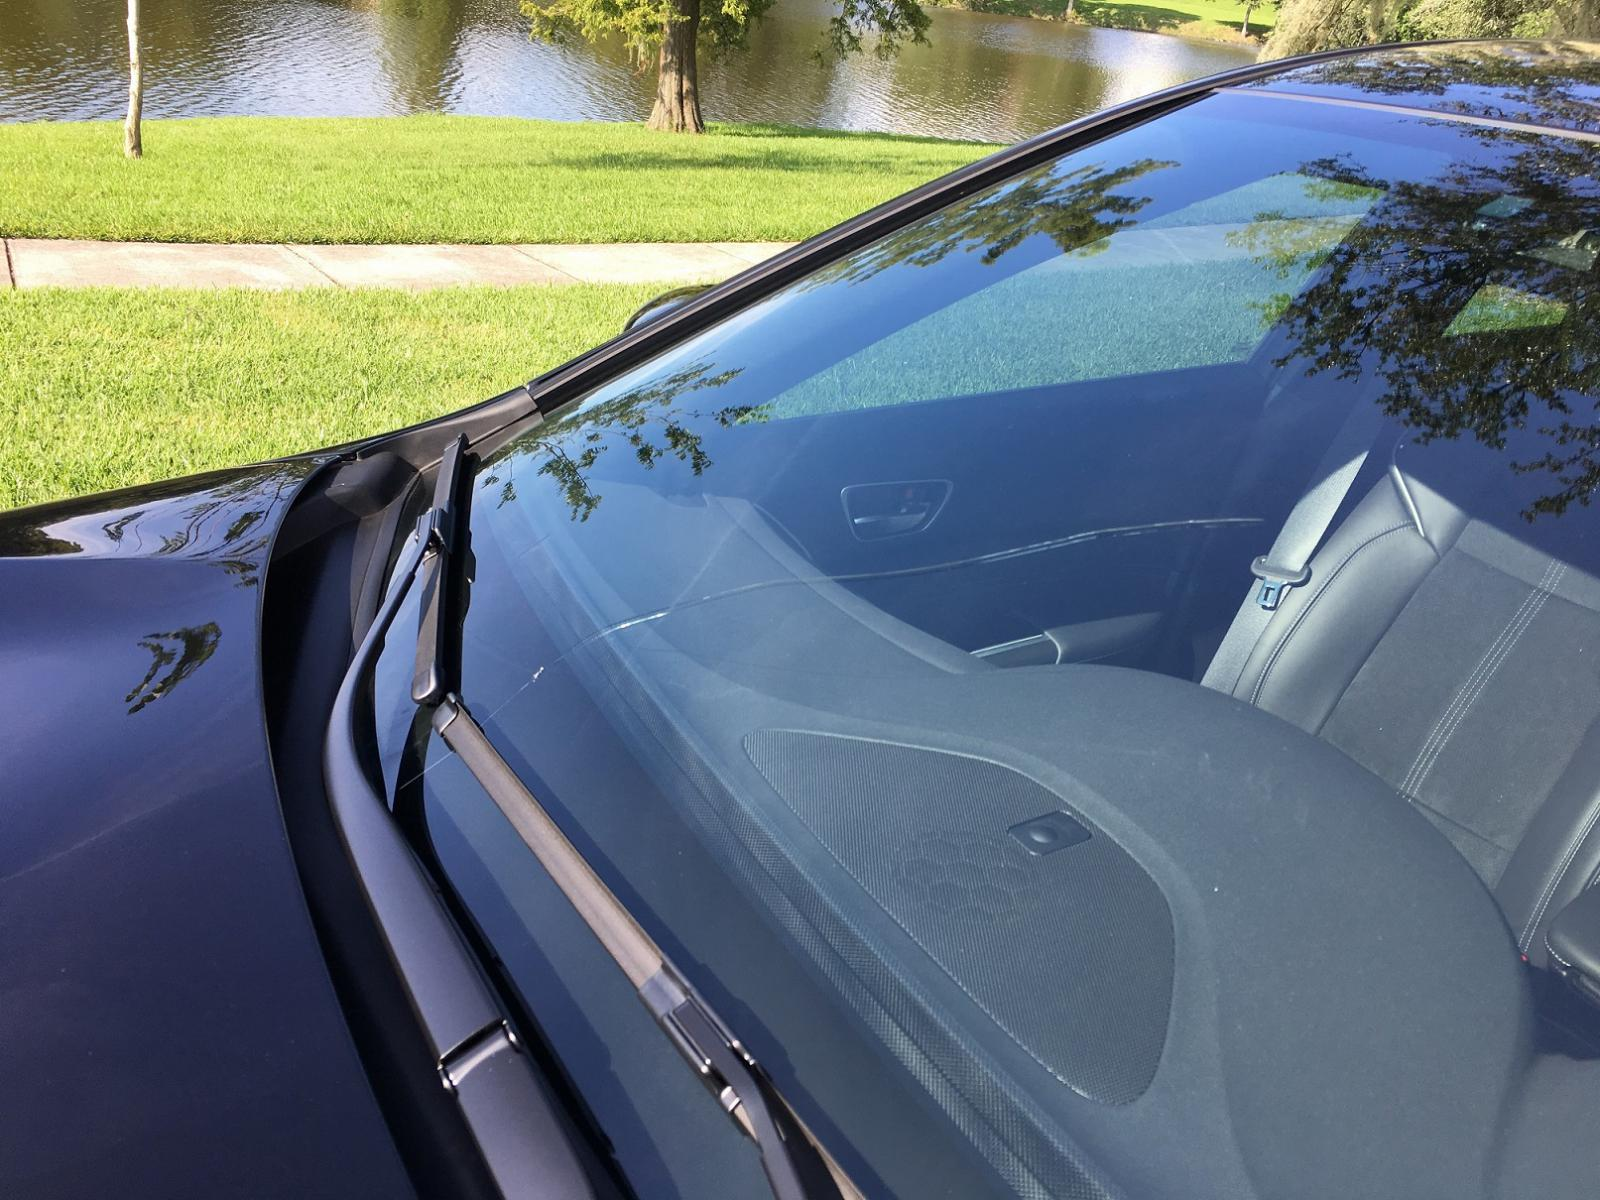 Cracked Windshield OEM Replacement Acura TLX Forum - Acura windshield replacement